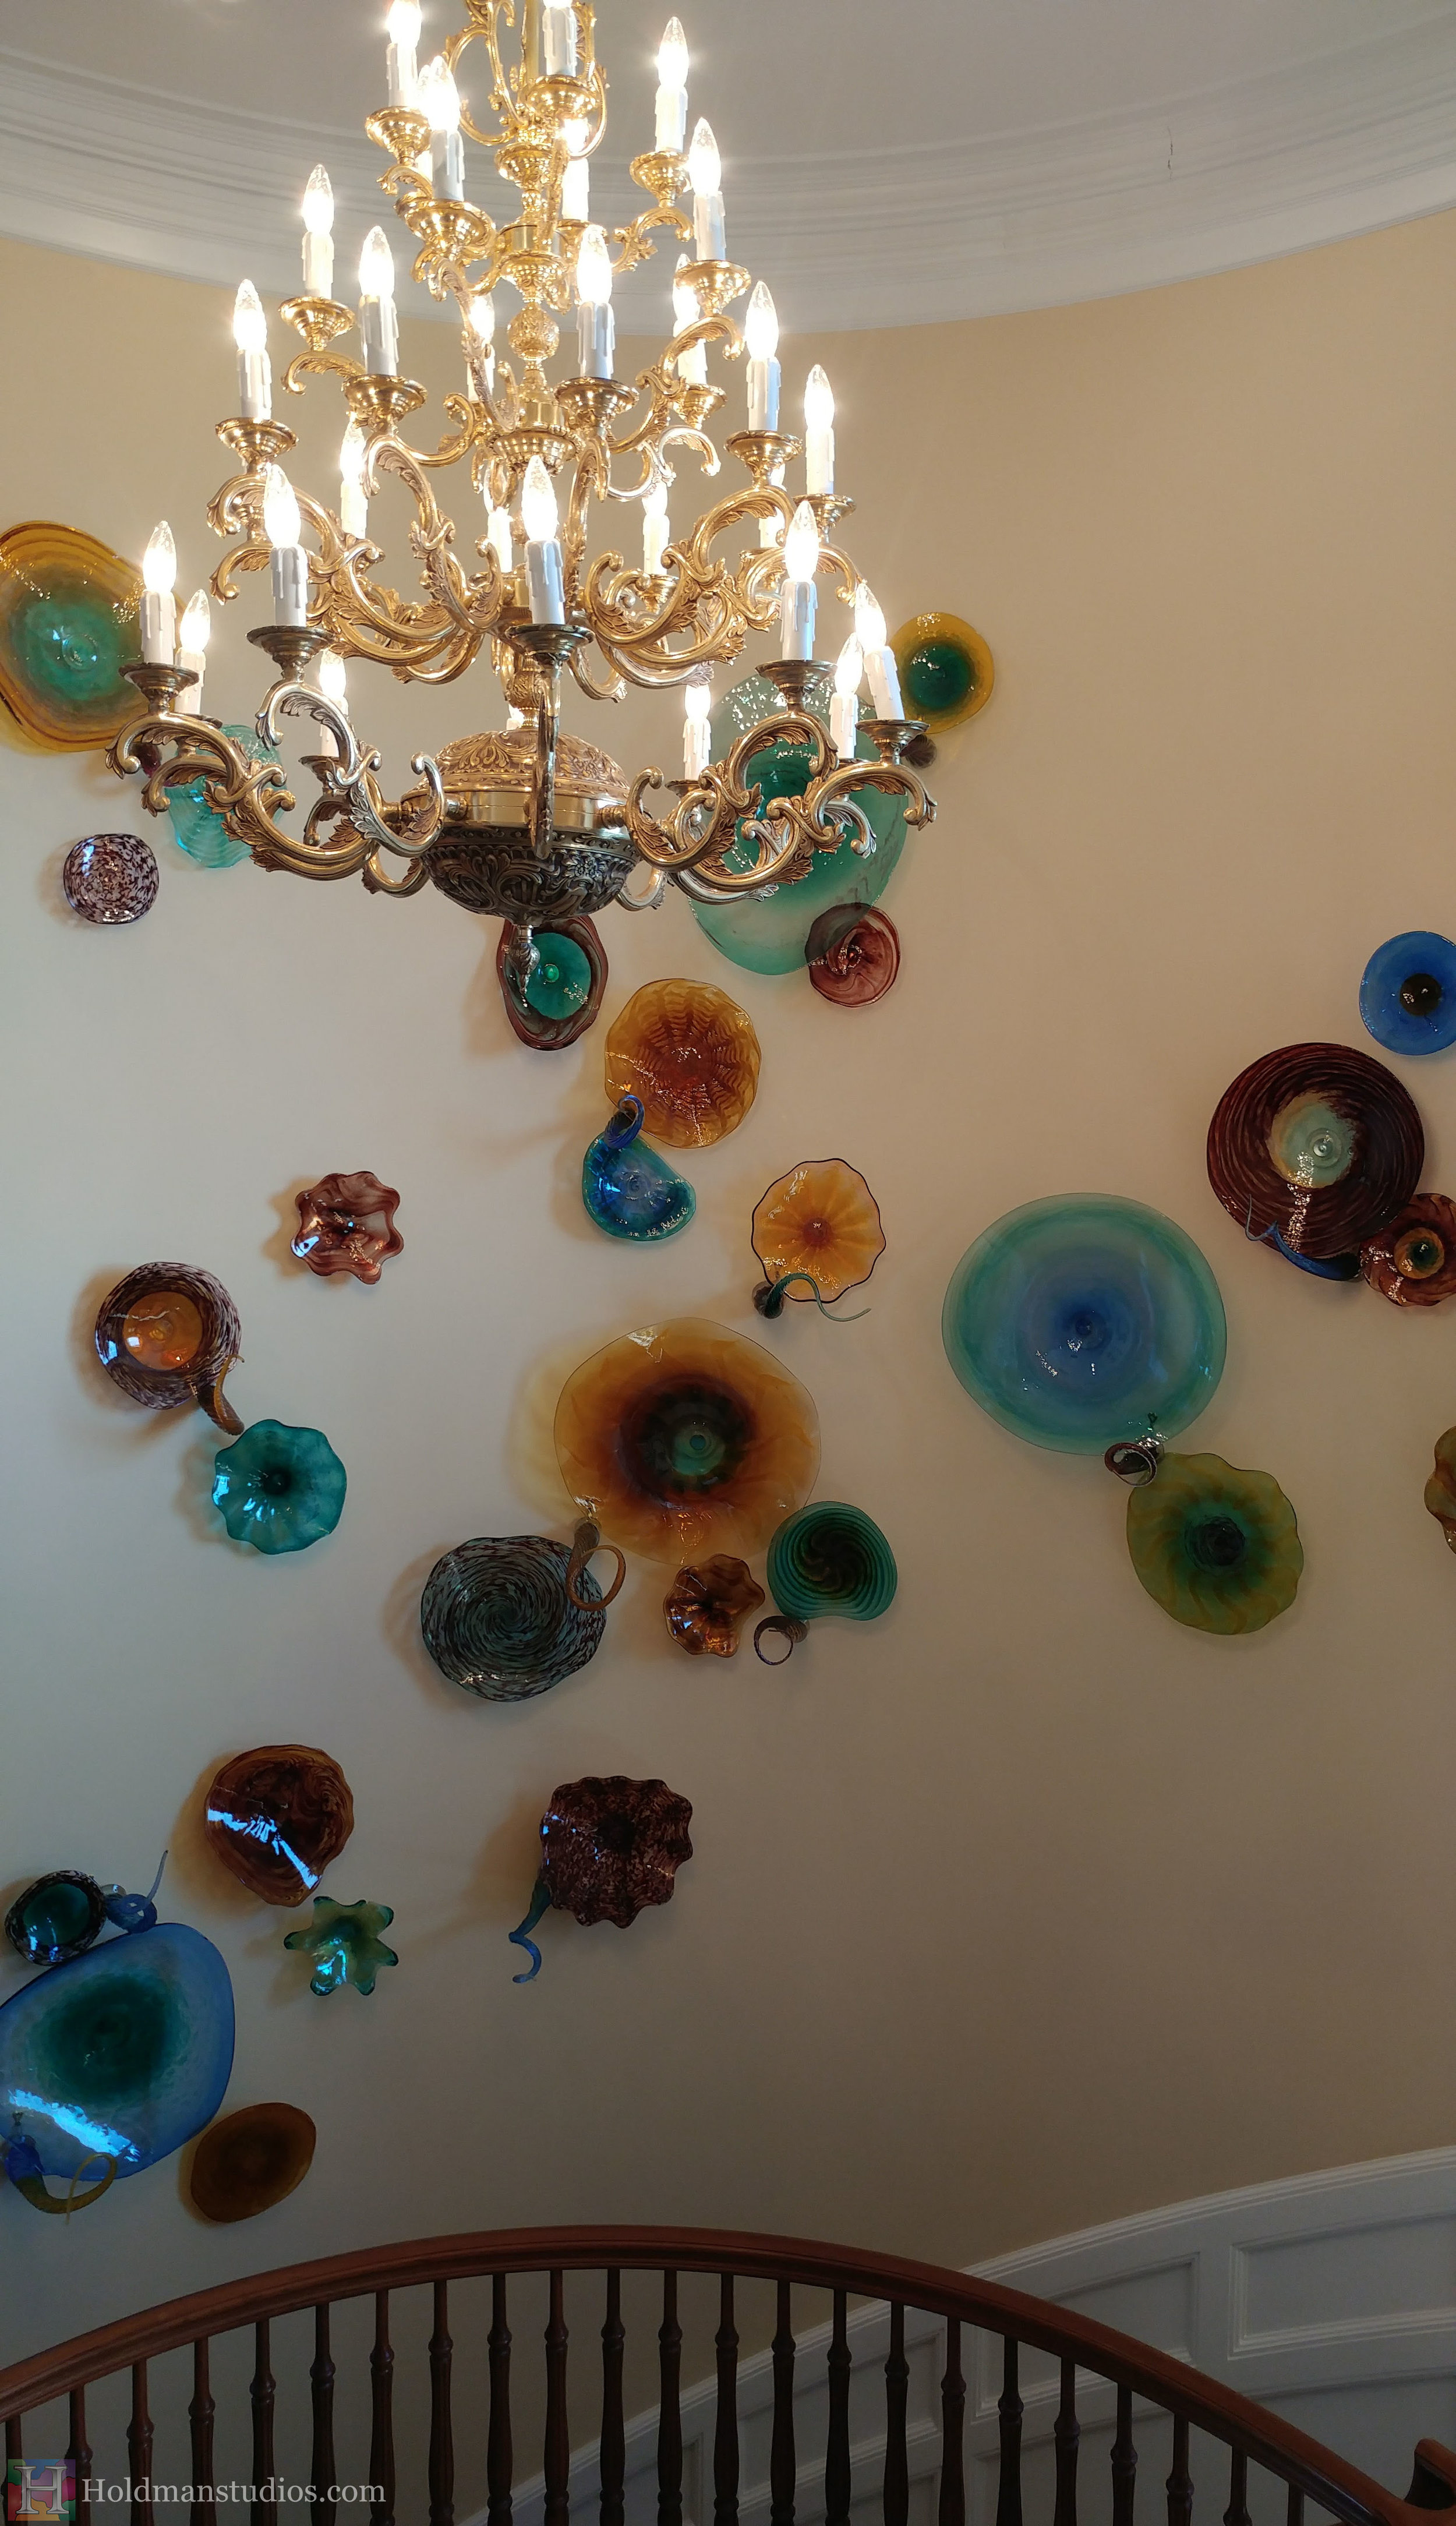 holdman-studios-hand-blown-glass-platters-bowls-tendrils-stair-wall-display-closeup2.jpg